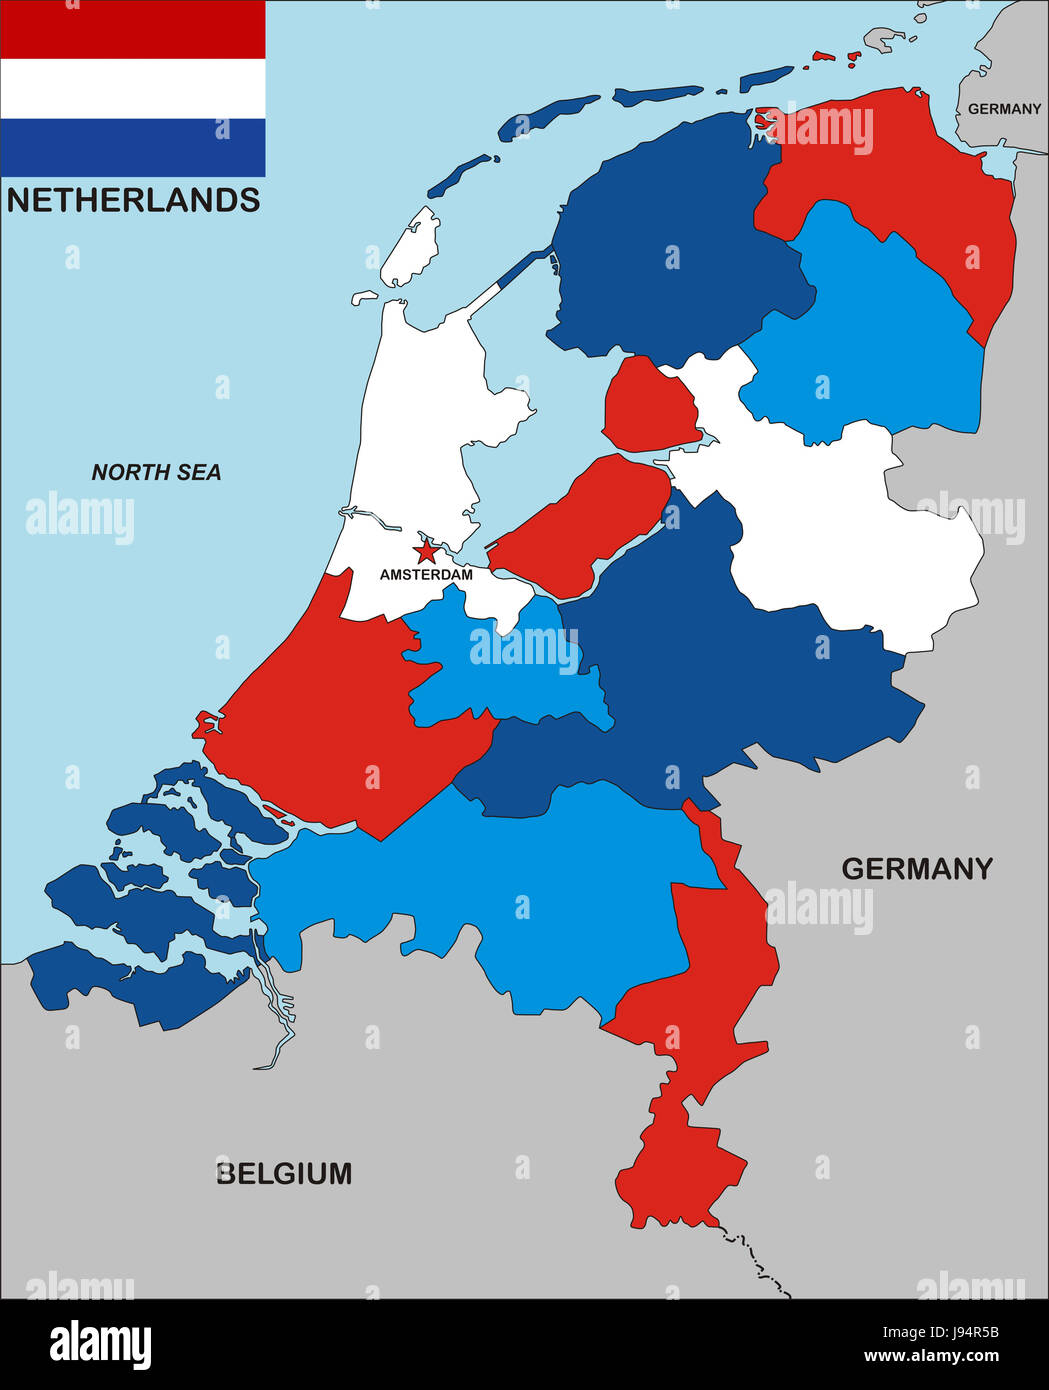 Picture of: Travel Political Holland Flag Netherlands Amsterdam Country Stock Photo Alamy